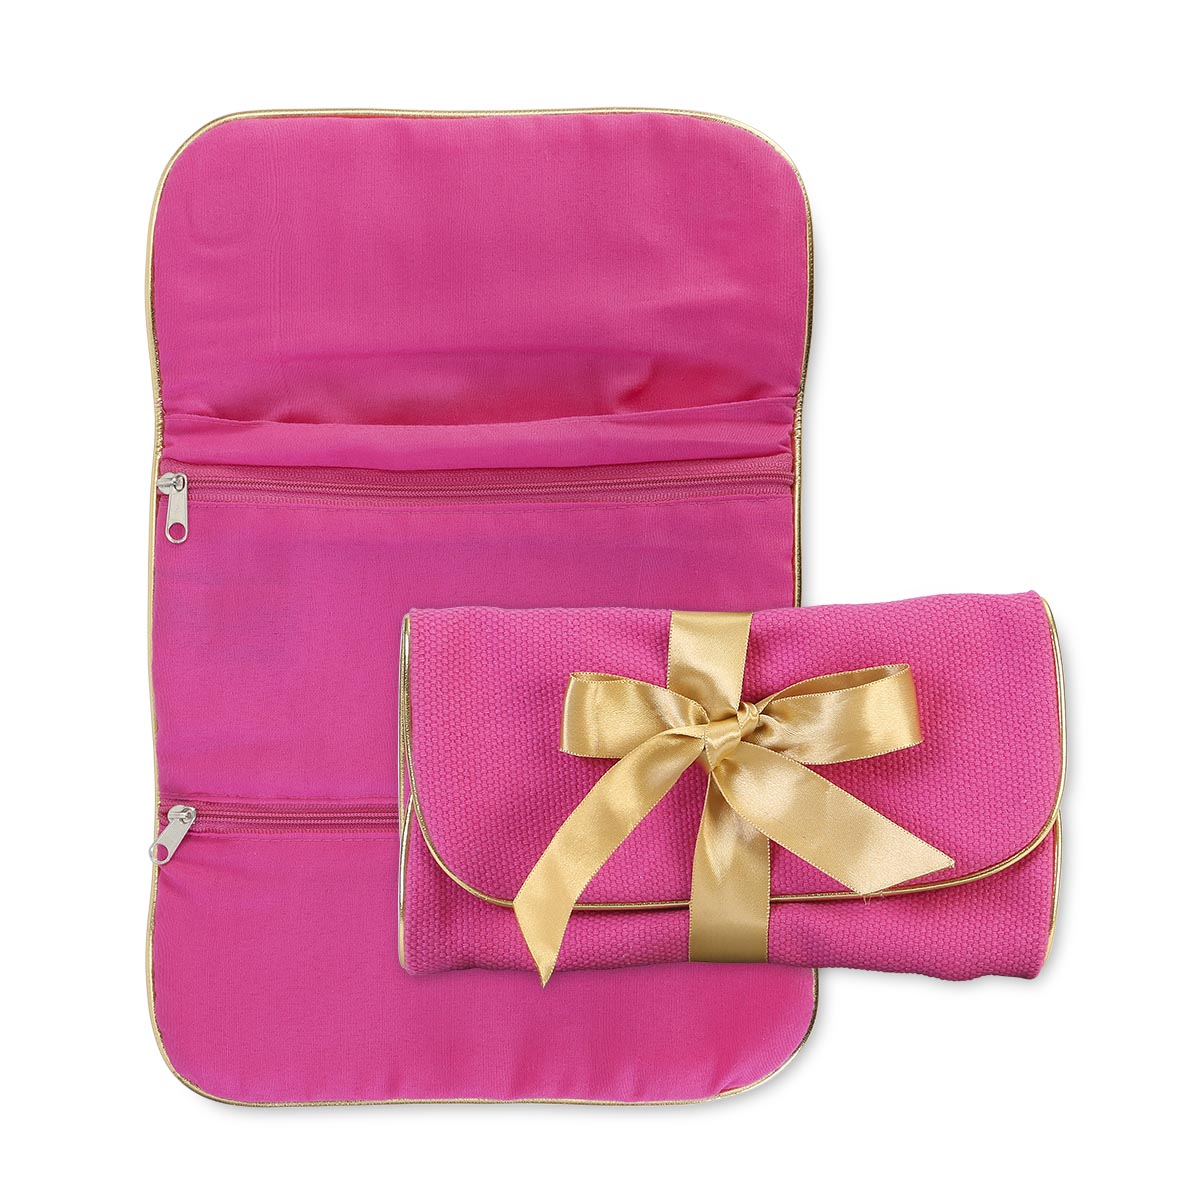 durry jewelry roll pink, gold trim